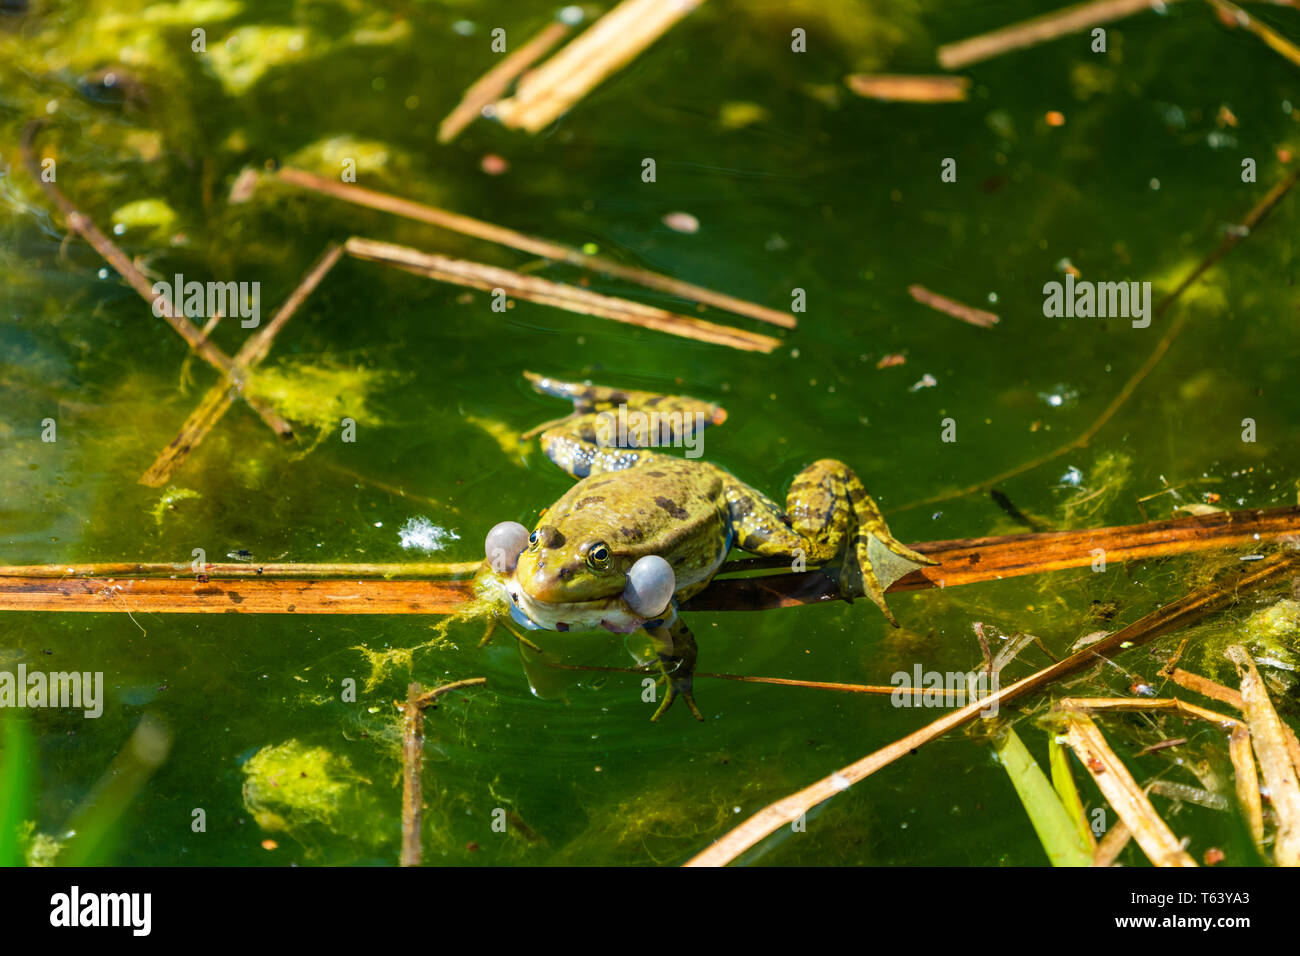 Marsh frog (Pelophylax ridibundus) sitting in a pond croaking with inflated vocal sacs - closeup with selective focus - Stock Image